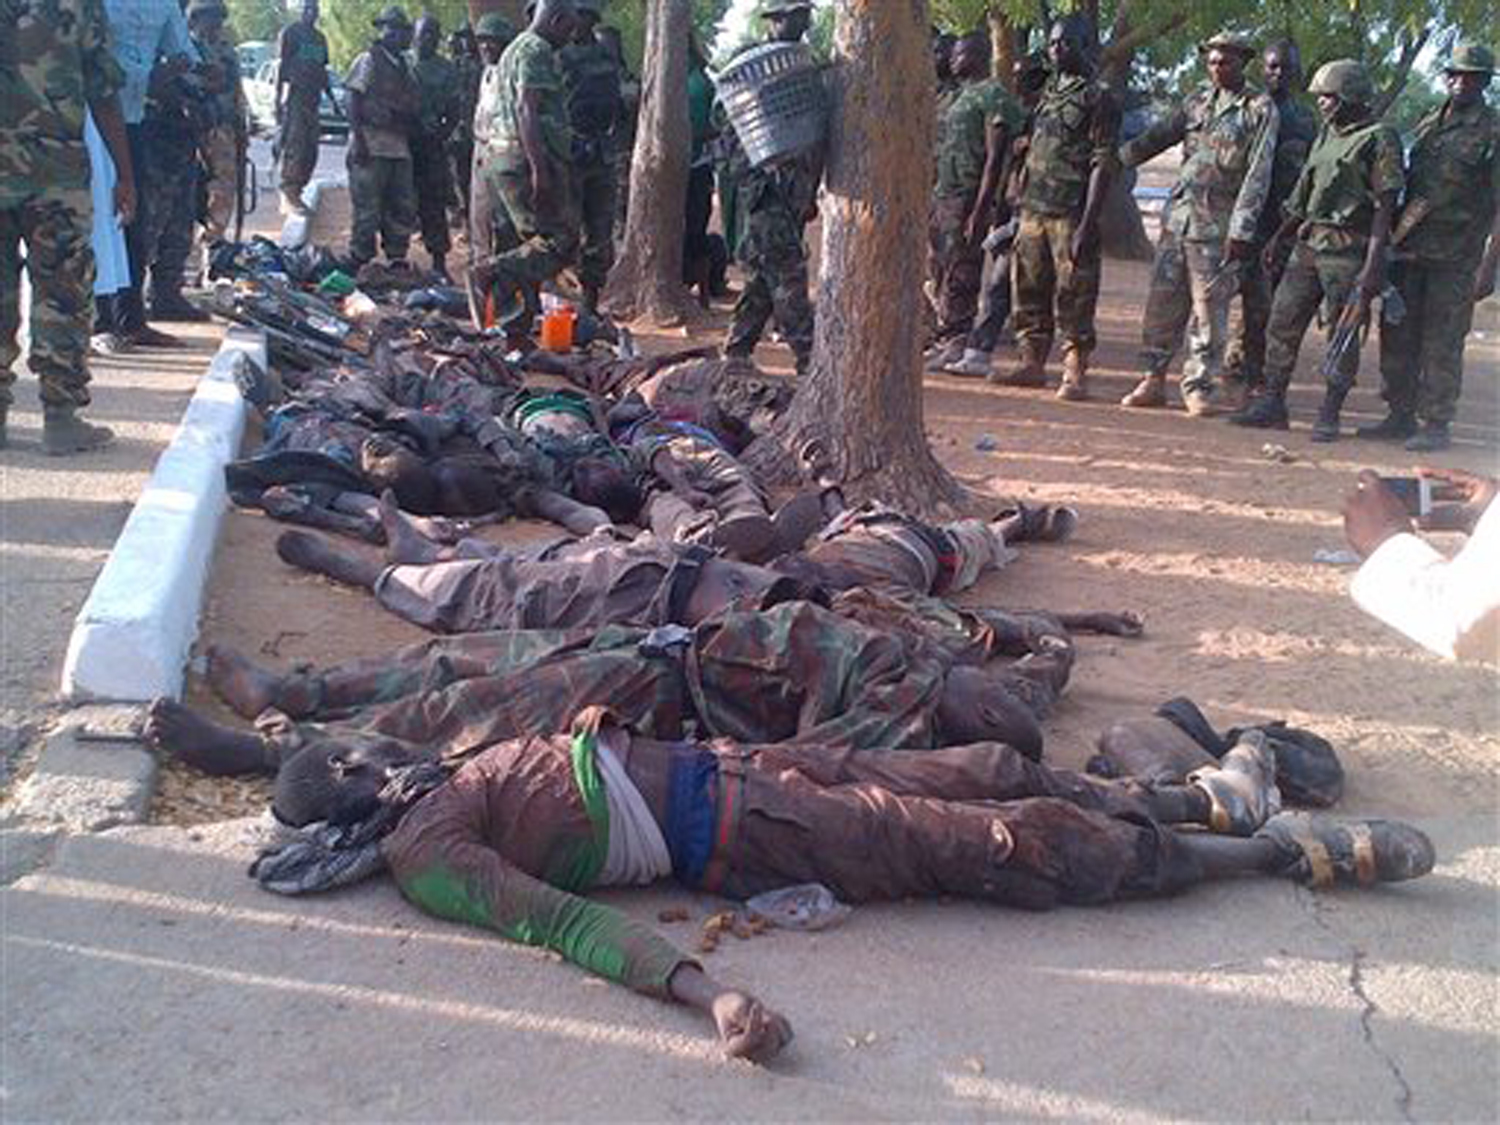 Possible Nigeria boko haram massacre commit